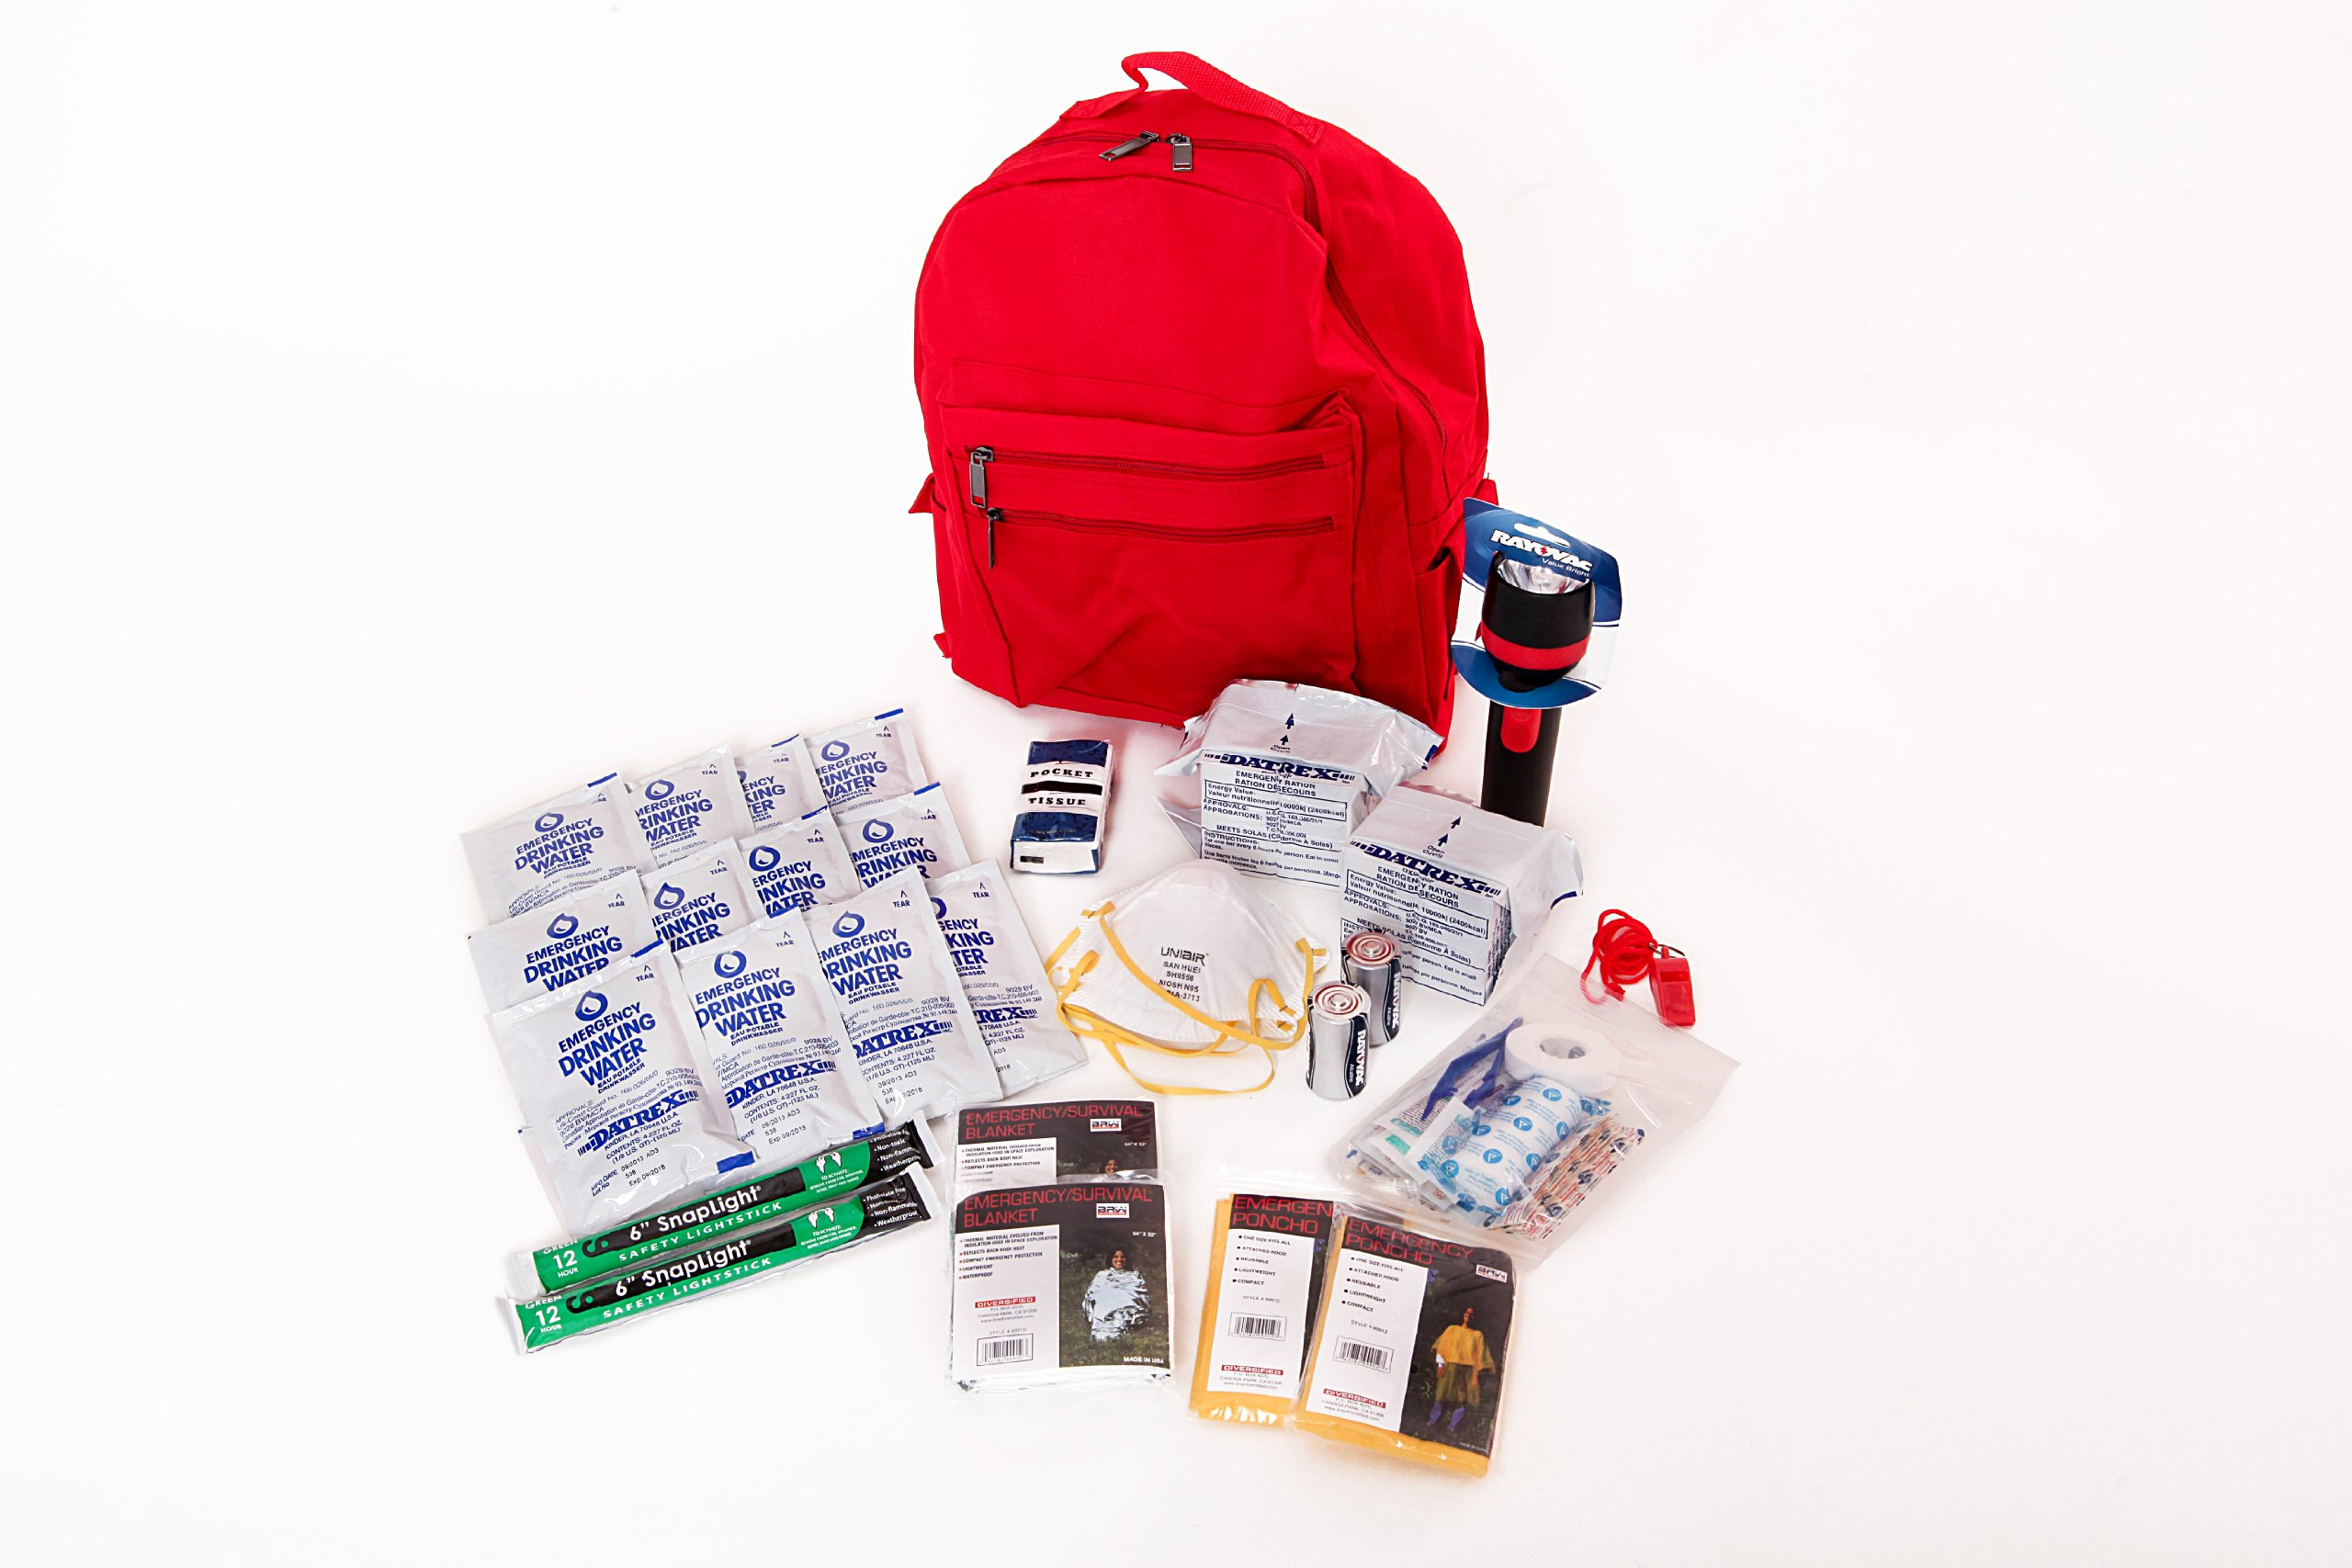 2 Person Essential Survival Kit Ideal for Earthquake, Evacuation, Emergency Disaster Preparedness 72 Hour Kits for Home, Work, or Auto: 2 Person